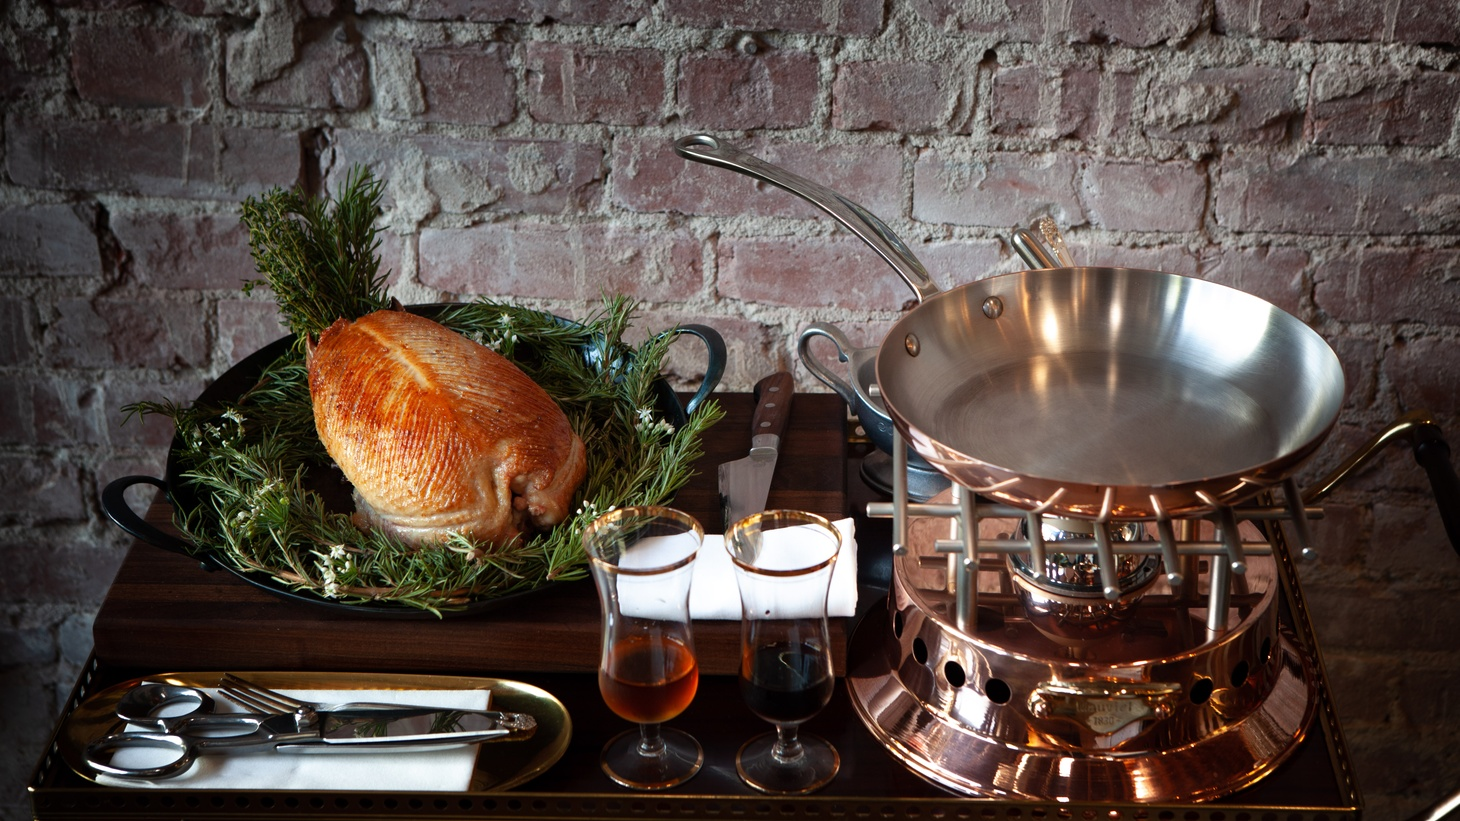 New rules ban tableside service, part of the spectacle of the pressed duck at Pasjoli.